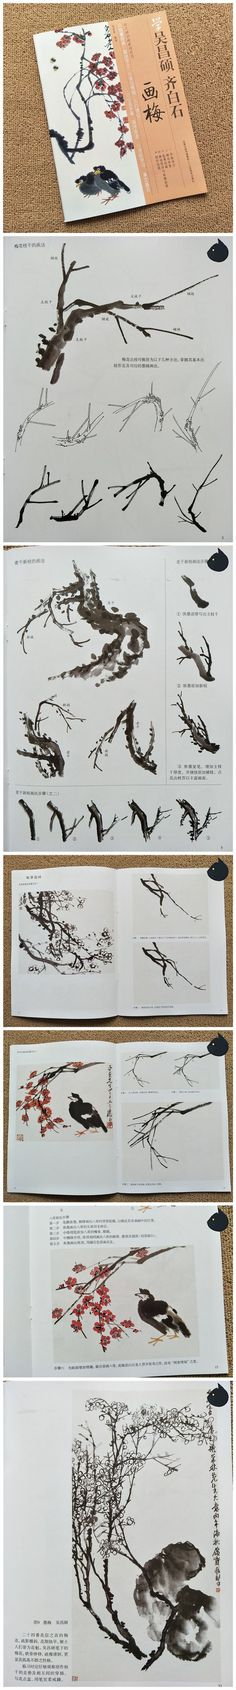 HH104 Learn Painting Plum Blossom from Wu Changshuo Qi Baishi [HH104] - $11.94 : hmay rice paper manufacturer for calligraphy, brush painting&Chinese painting